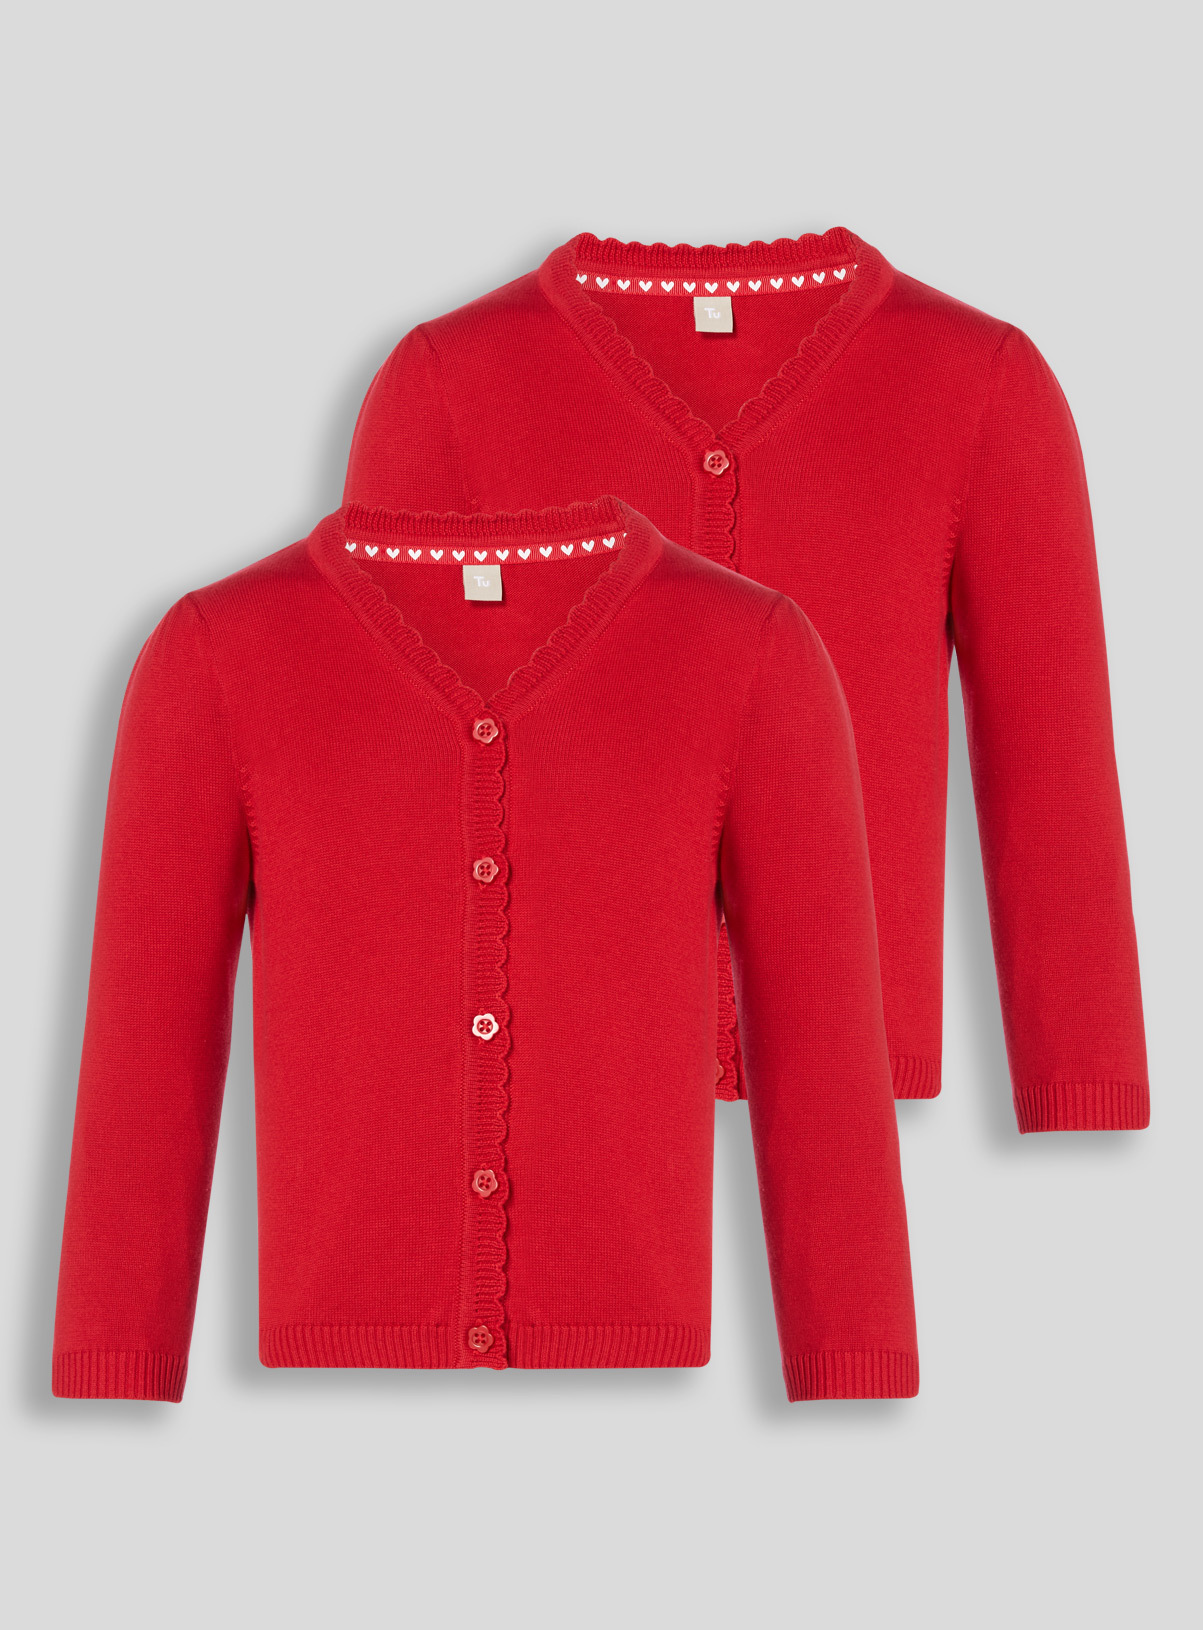 All Girl's Clothing Red Cardigan 2 Pack (3-16 years) | Tu clothing